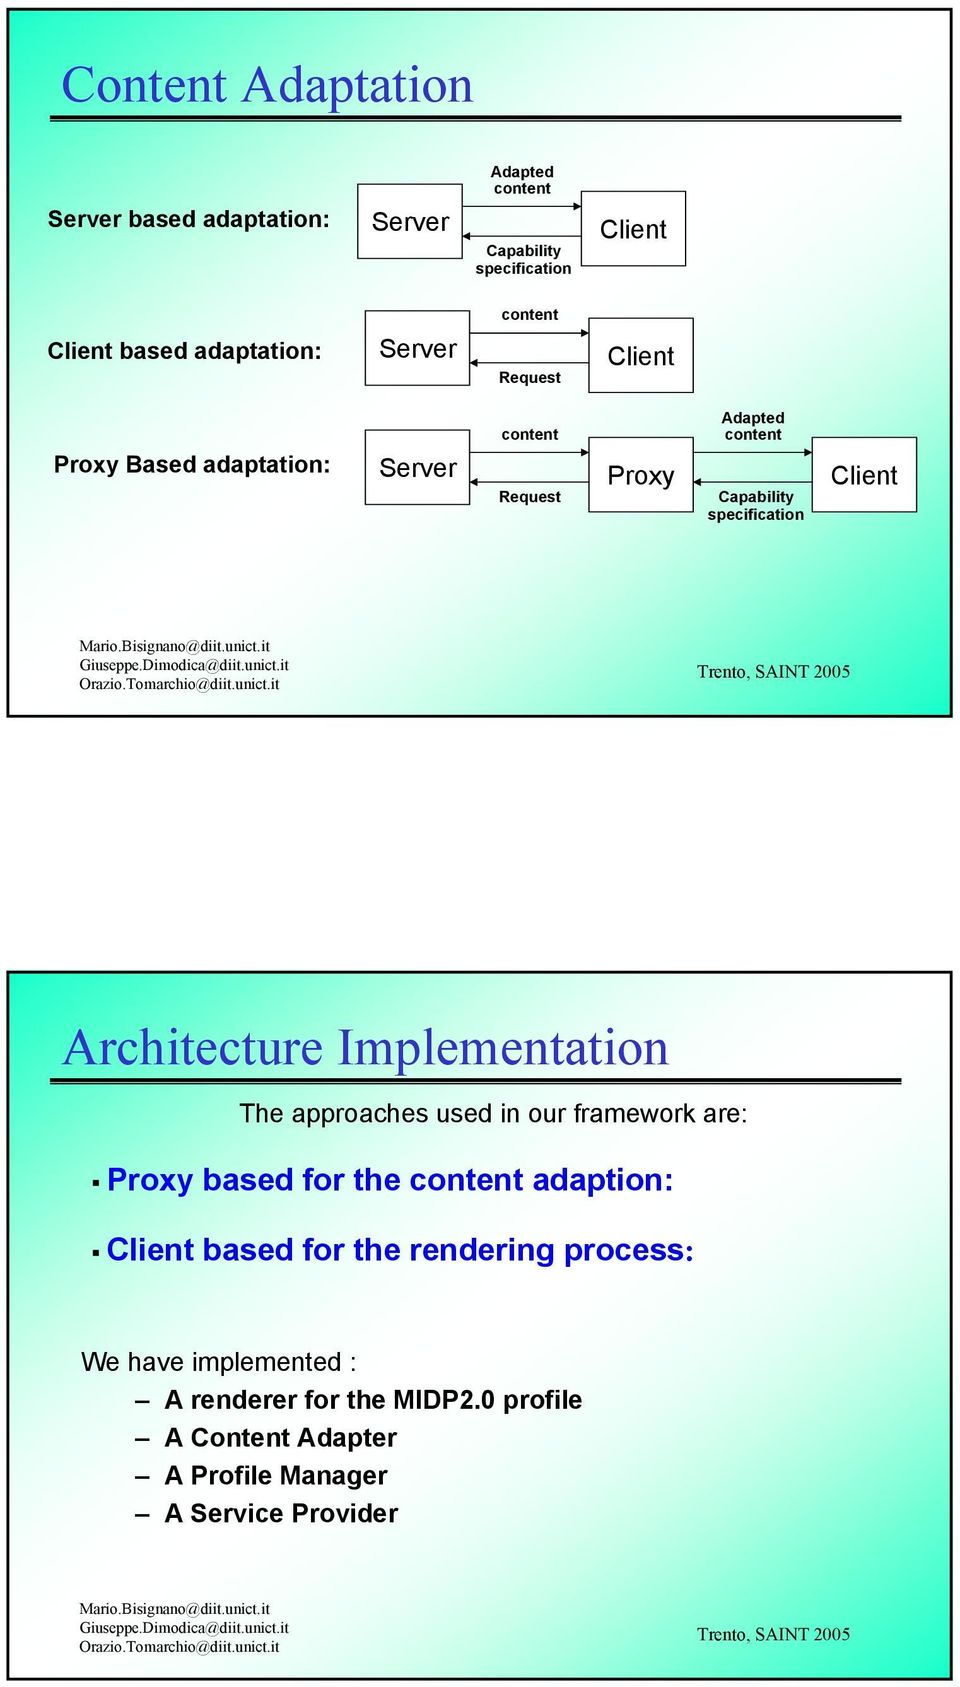 Architecture Implementation The approaches used in our framework are: Proxy based for the content adaption: Client based for